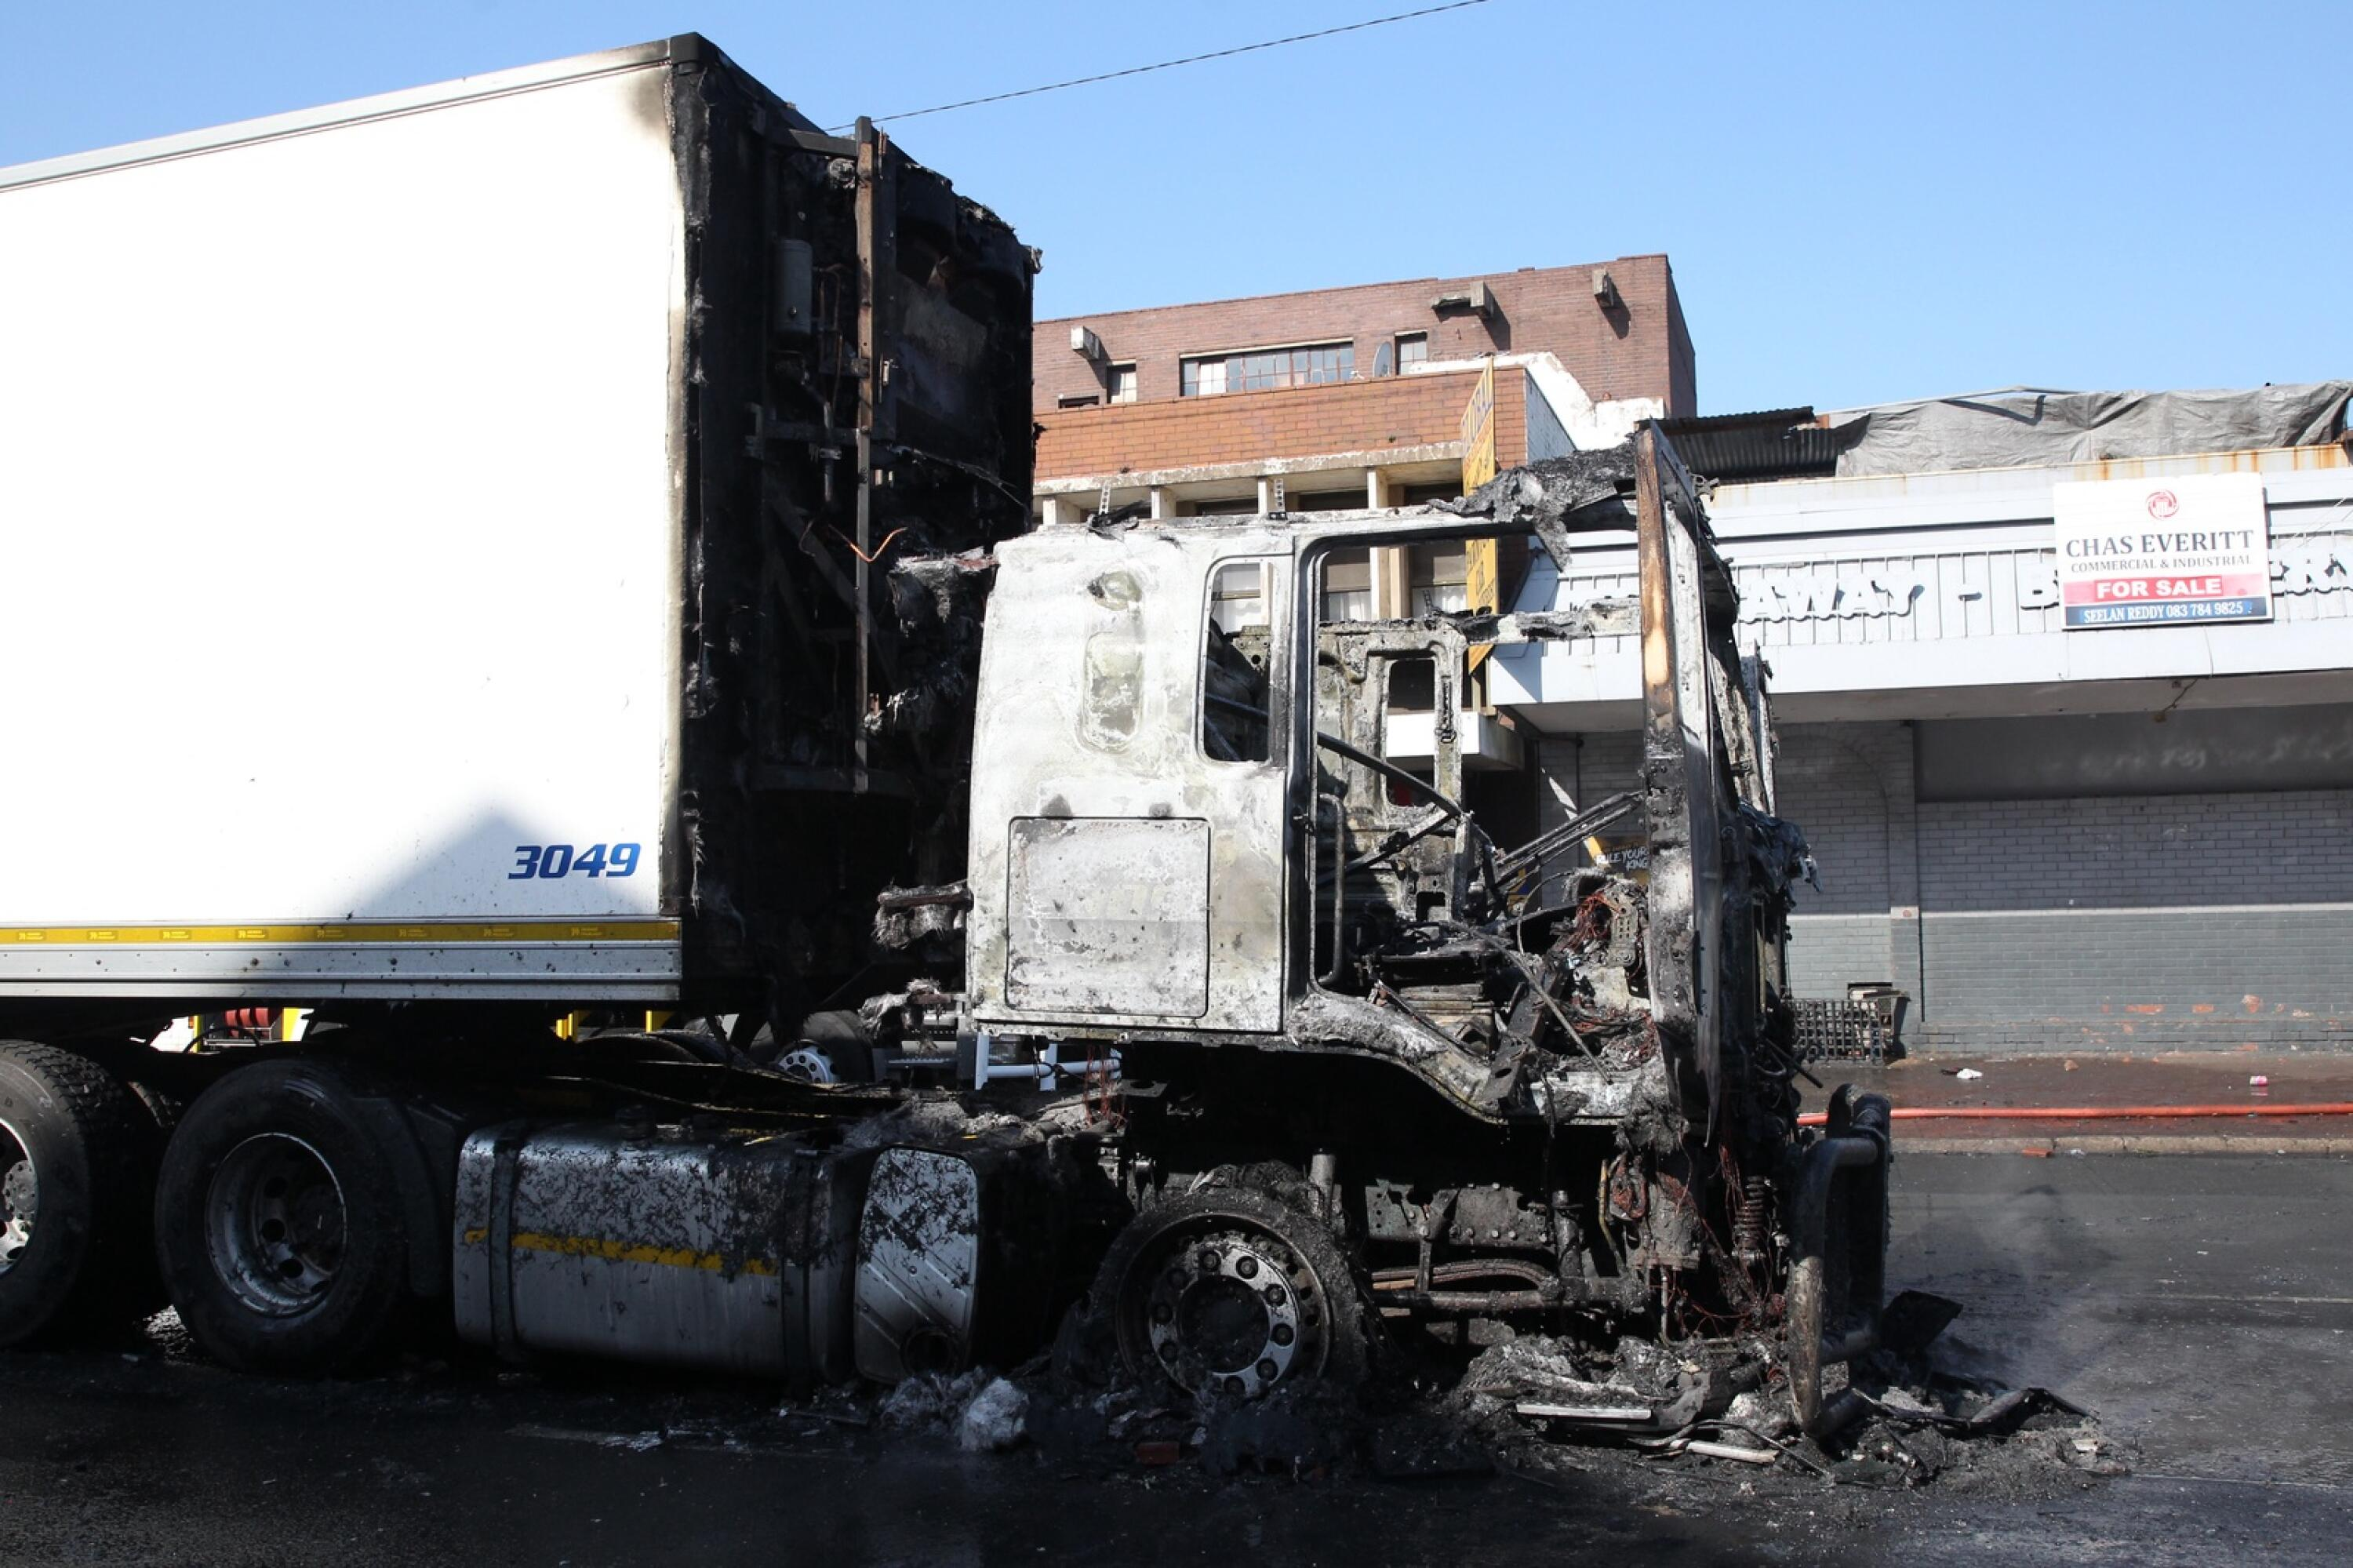 After allegations that parts of the province may expect unrest today, the Road Freight Association said the freight industry would pull out their trucks and employees in KZN should further violence arise.